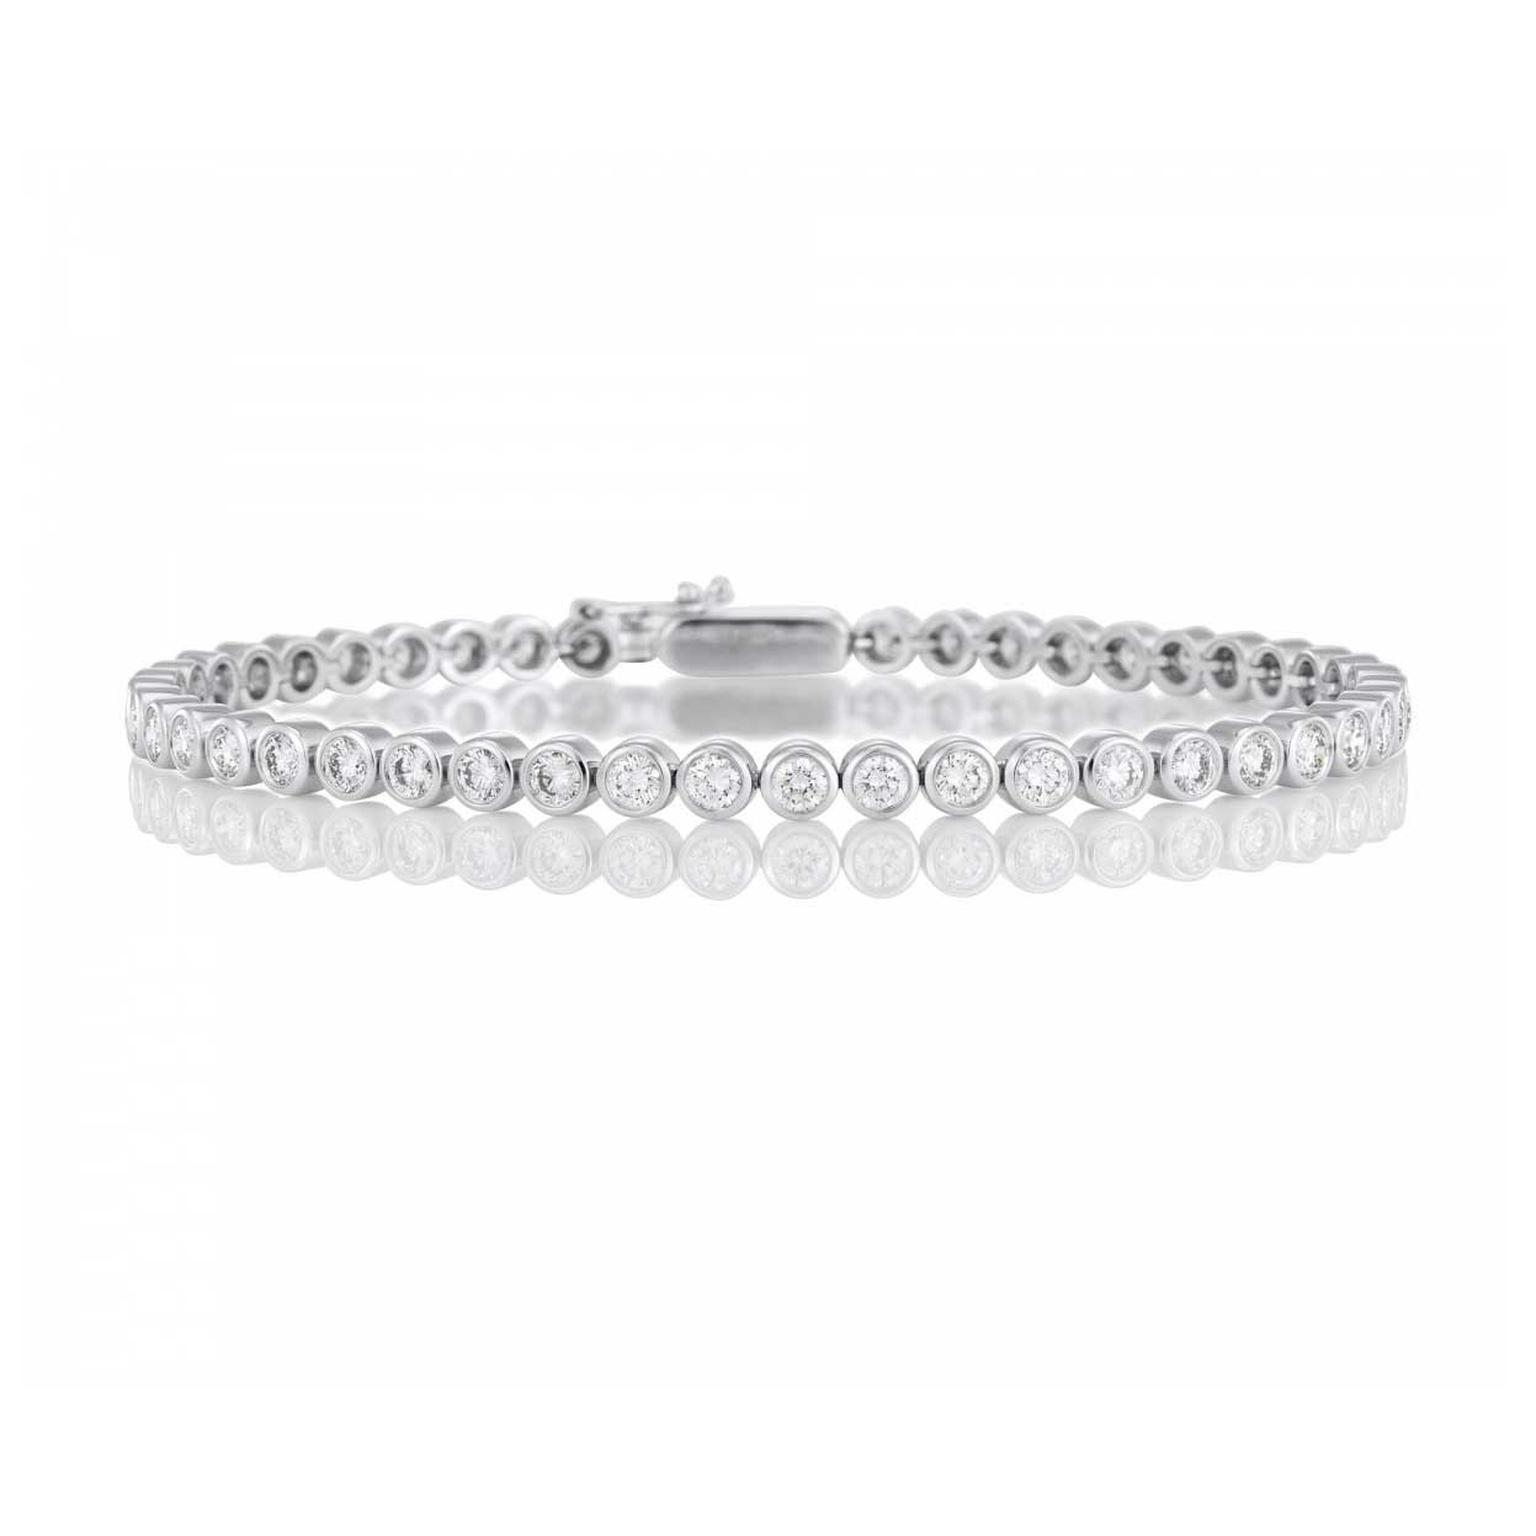 jewelry sale at carat diamond eternity j bracelets odelia bangle b bangles master bracelet karat id for